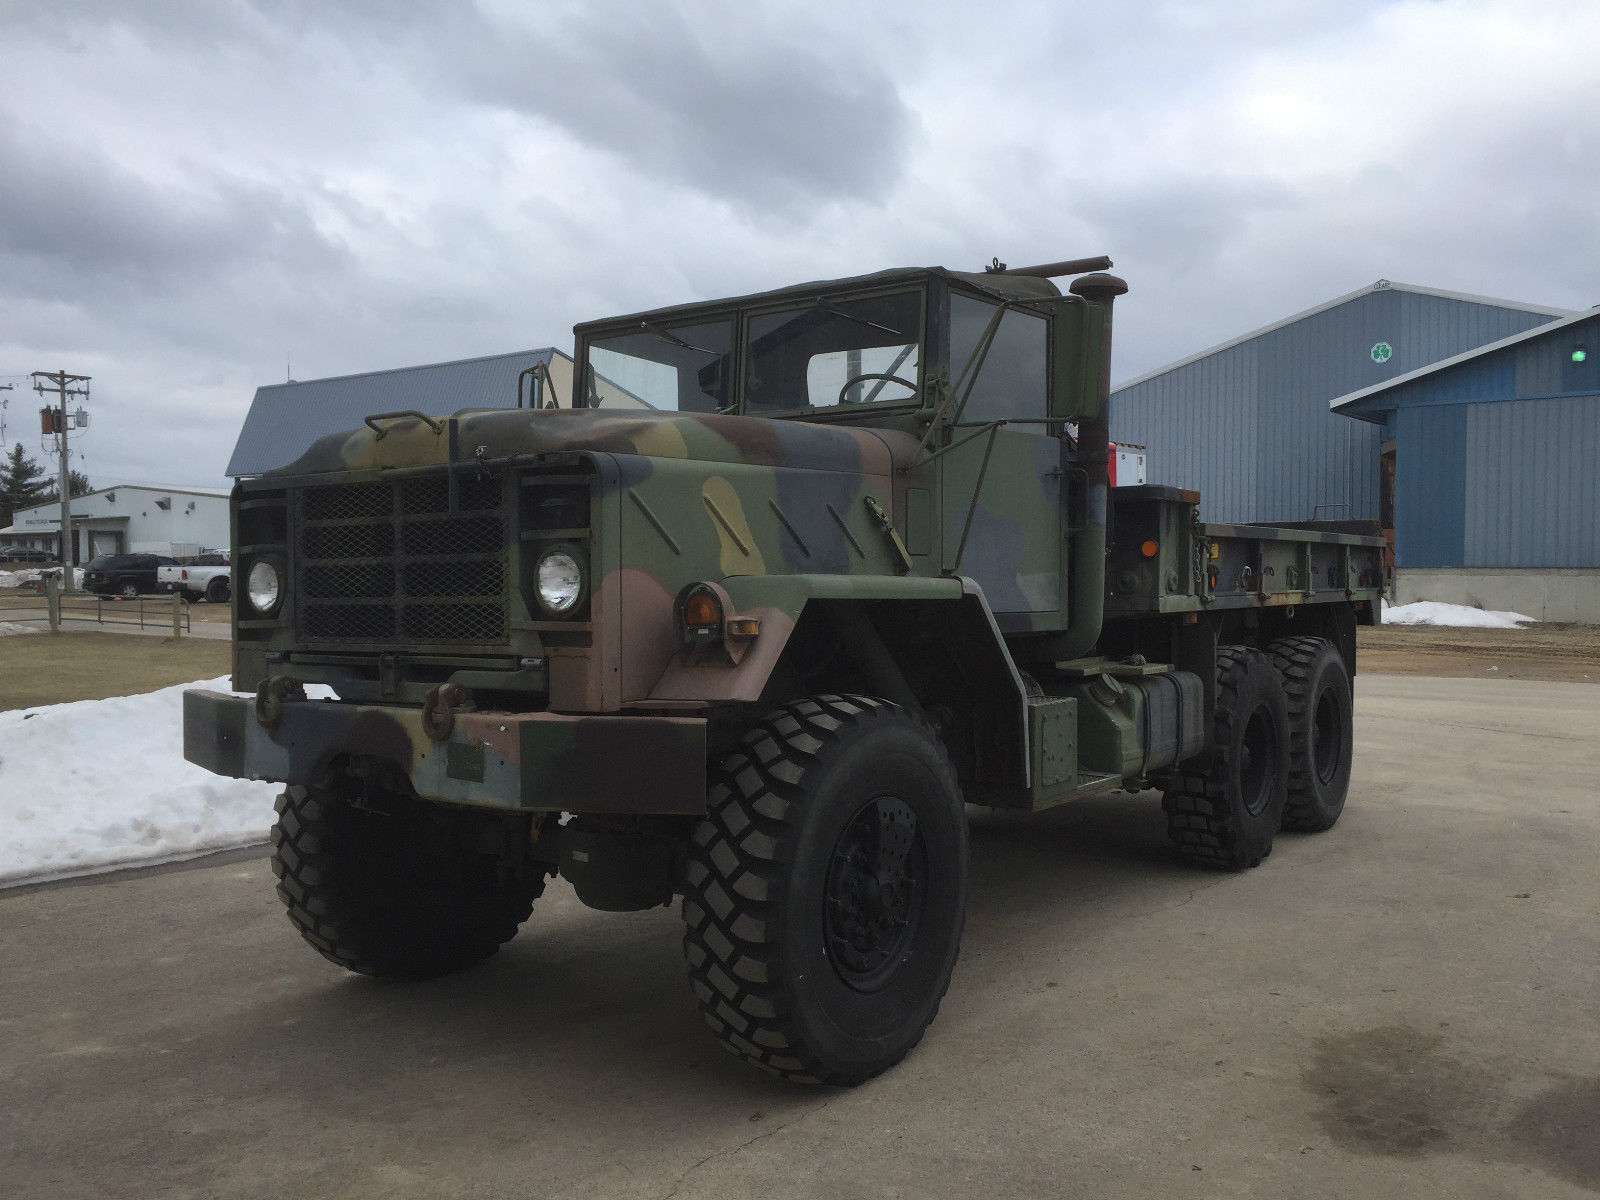 1991 BMY Harsco M923a2 Cargo Truck for sale